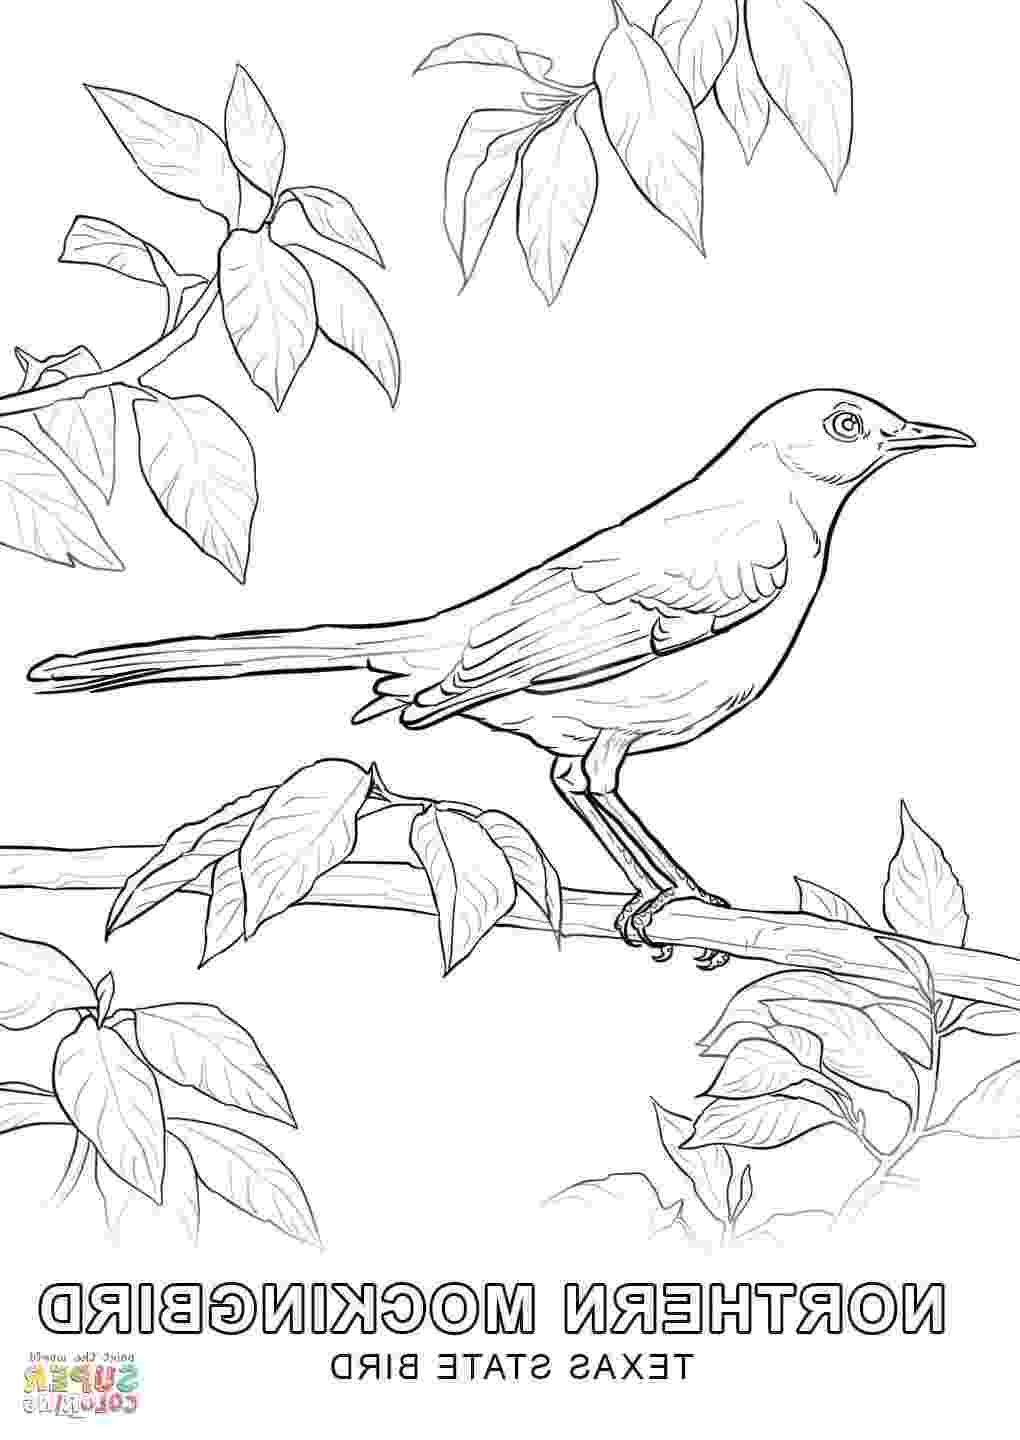 texas state bird texas state bird page coloring pages state texas bird